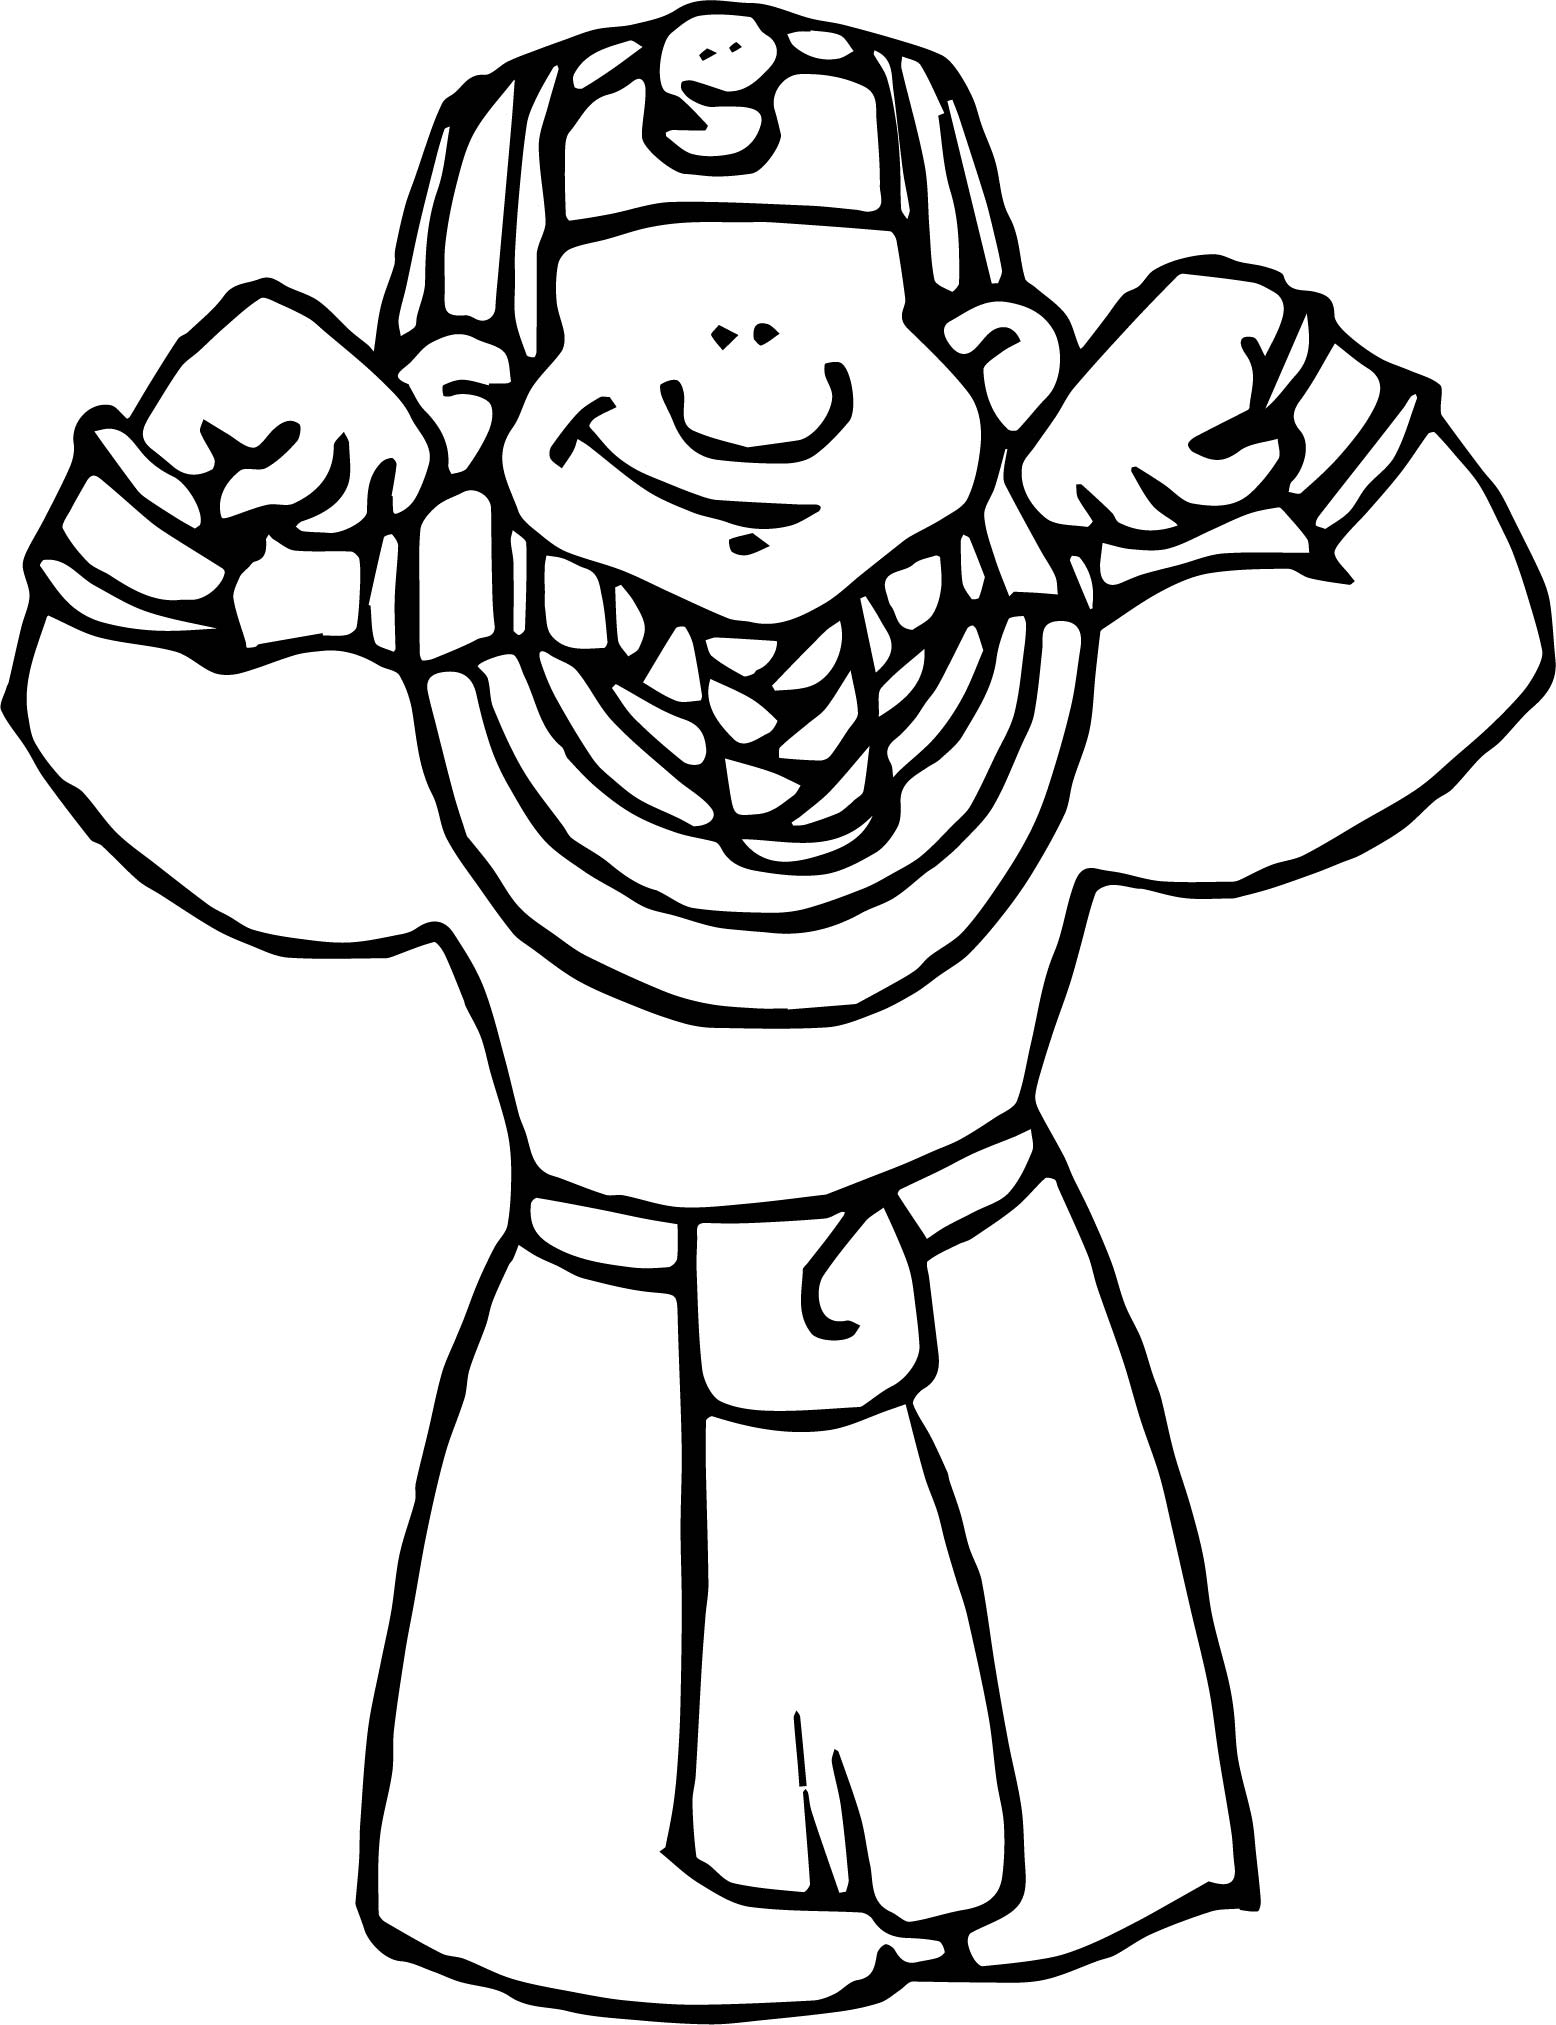 Pharaohs ancient egypt for kids coloring page for Pharaoh coloring pages